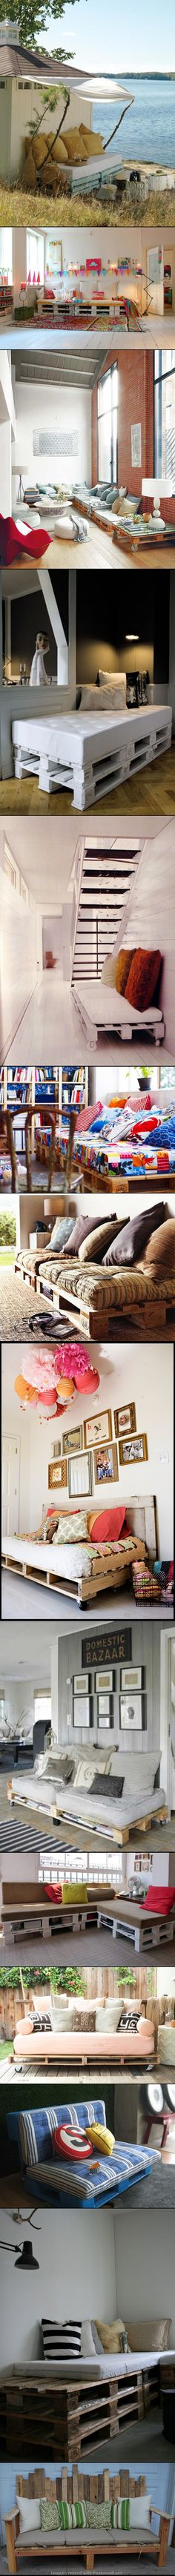 Home Decor DIY TOP-15 PALLET SOFA IDEAS